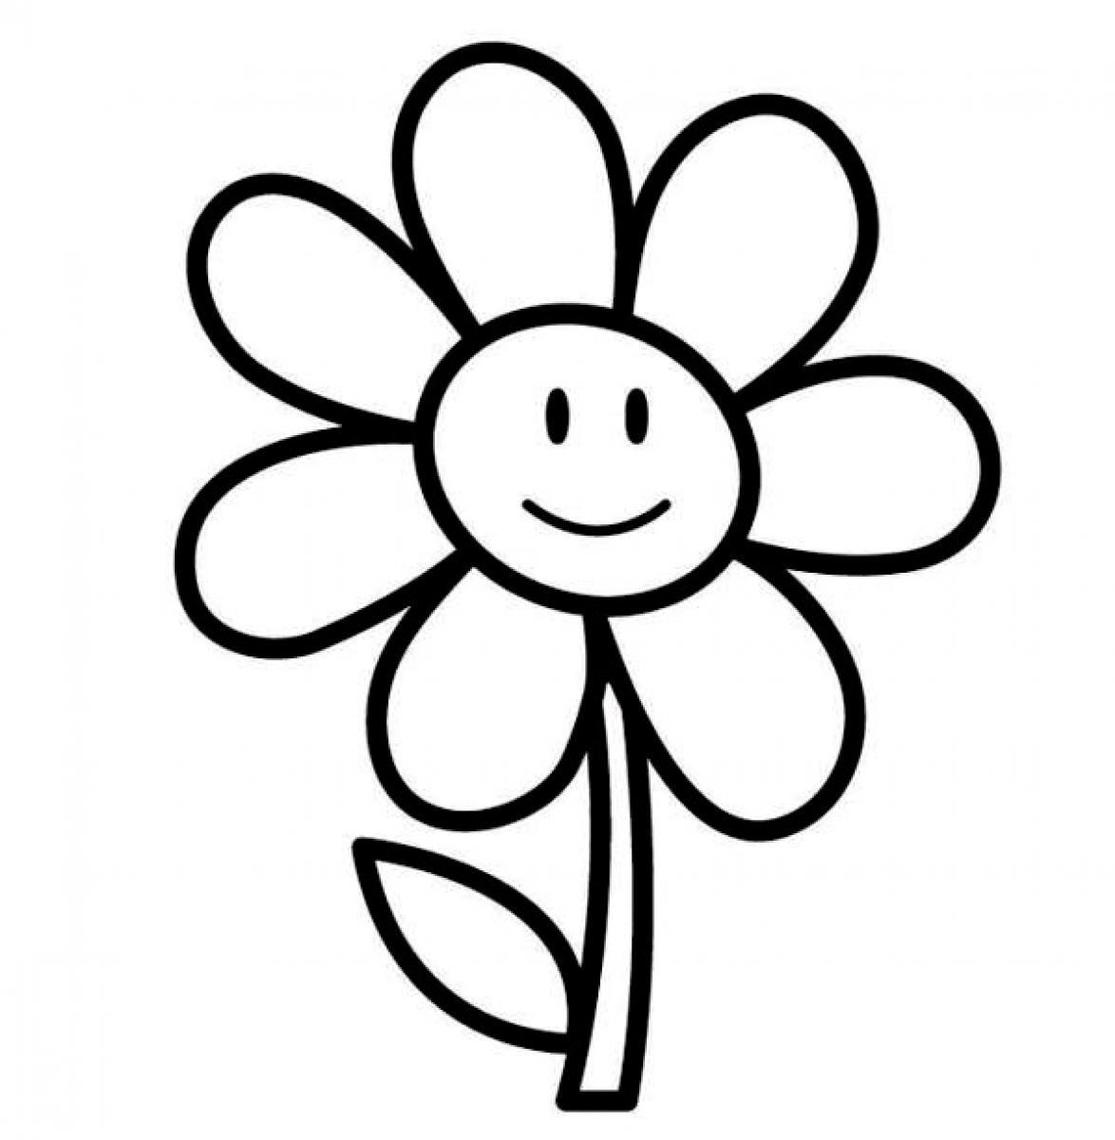 Flower black and white. Clipart free download best